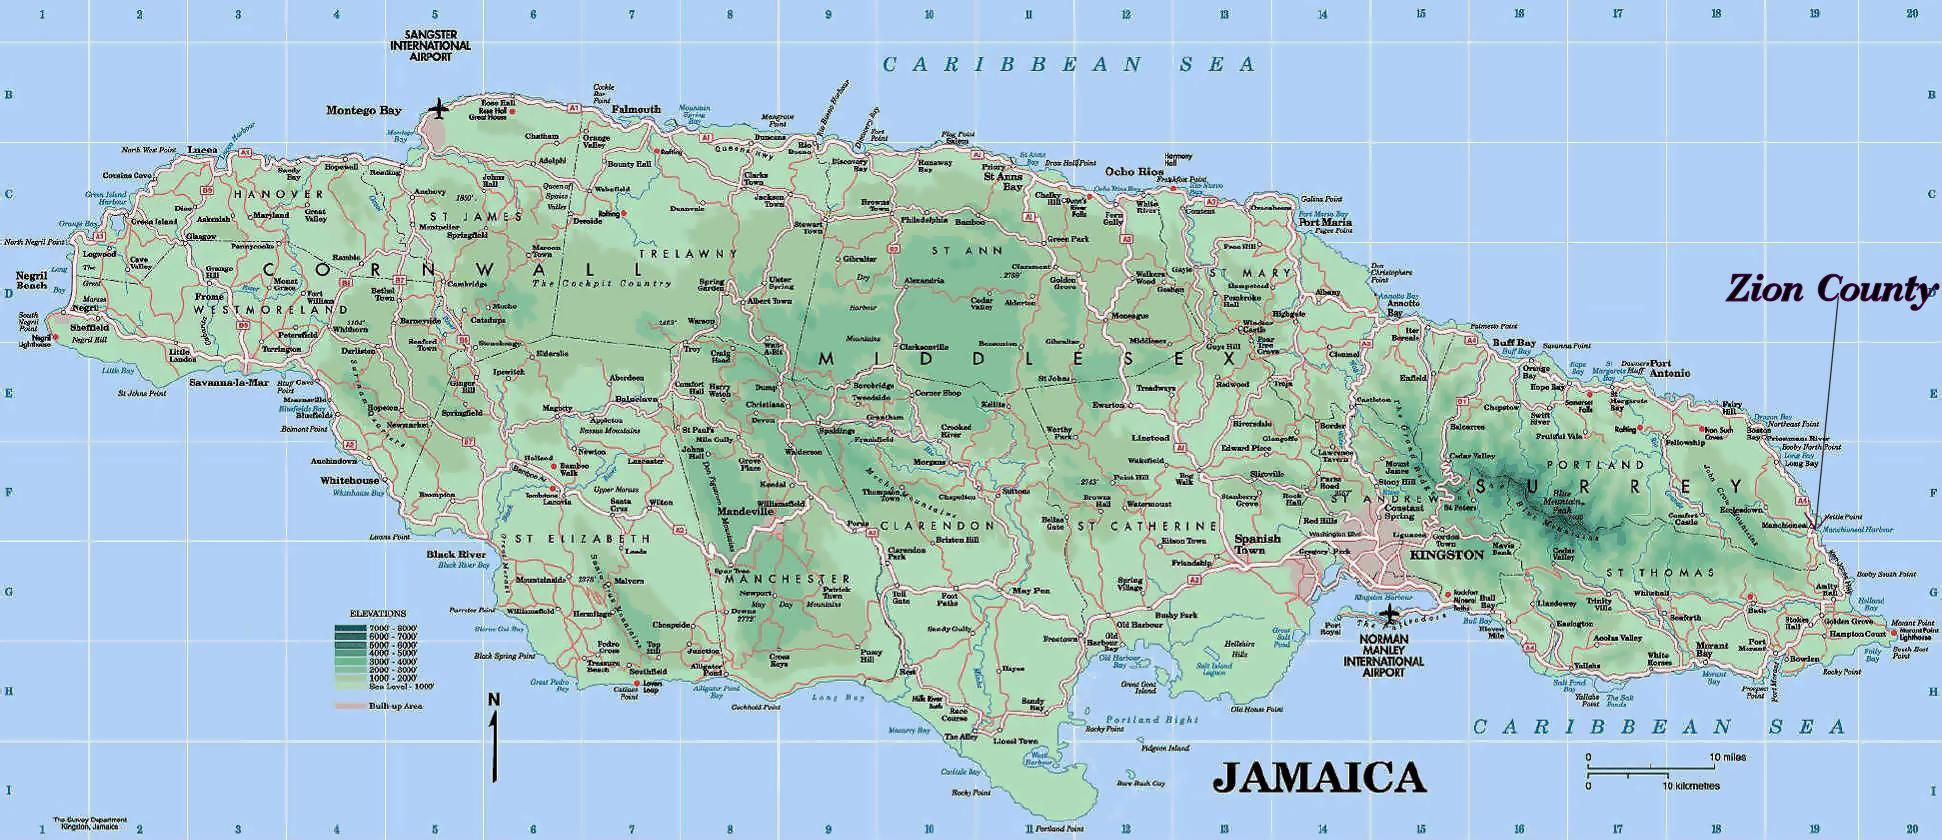 Physical map of jamaica - Physical map of jamaica showing ... on peopling of the americas, mercator projection of the americas, geological map of the americas, language map of the americas, physical map southern africa, physical features of america, physical map china, world map of the americas, outline map of the americas, physical map sub-saharan africa, historical map of the americas, topographic map of the americas,